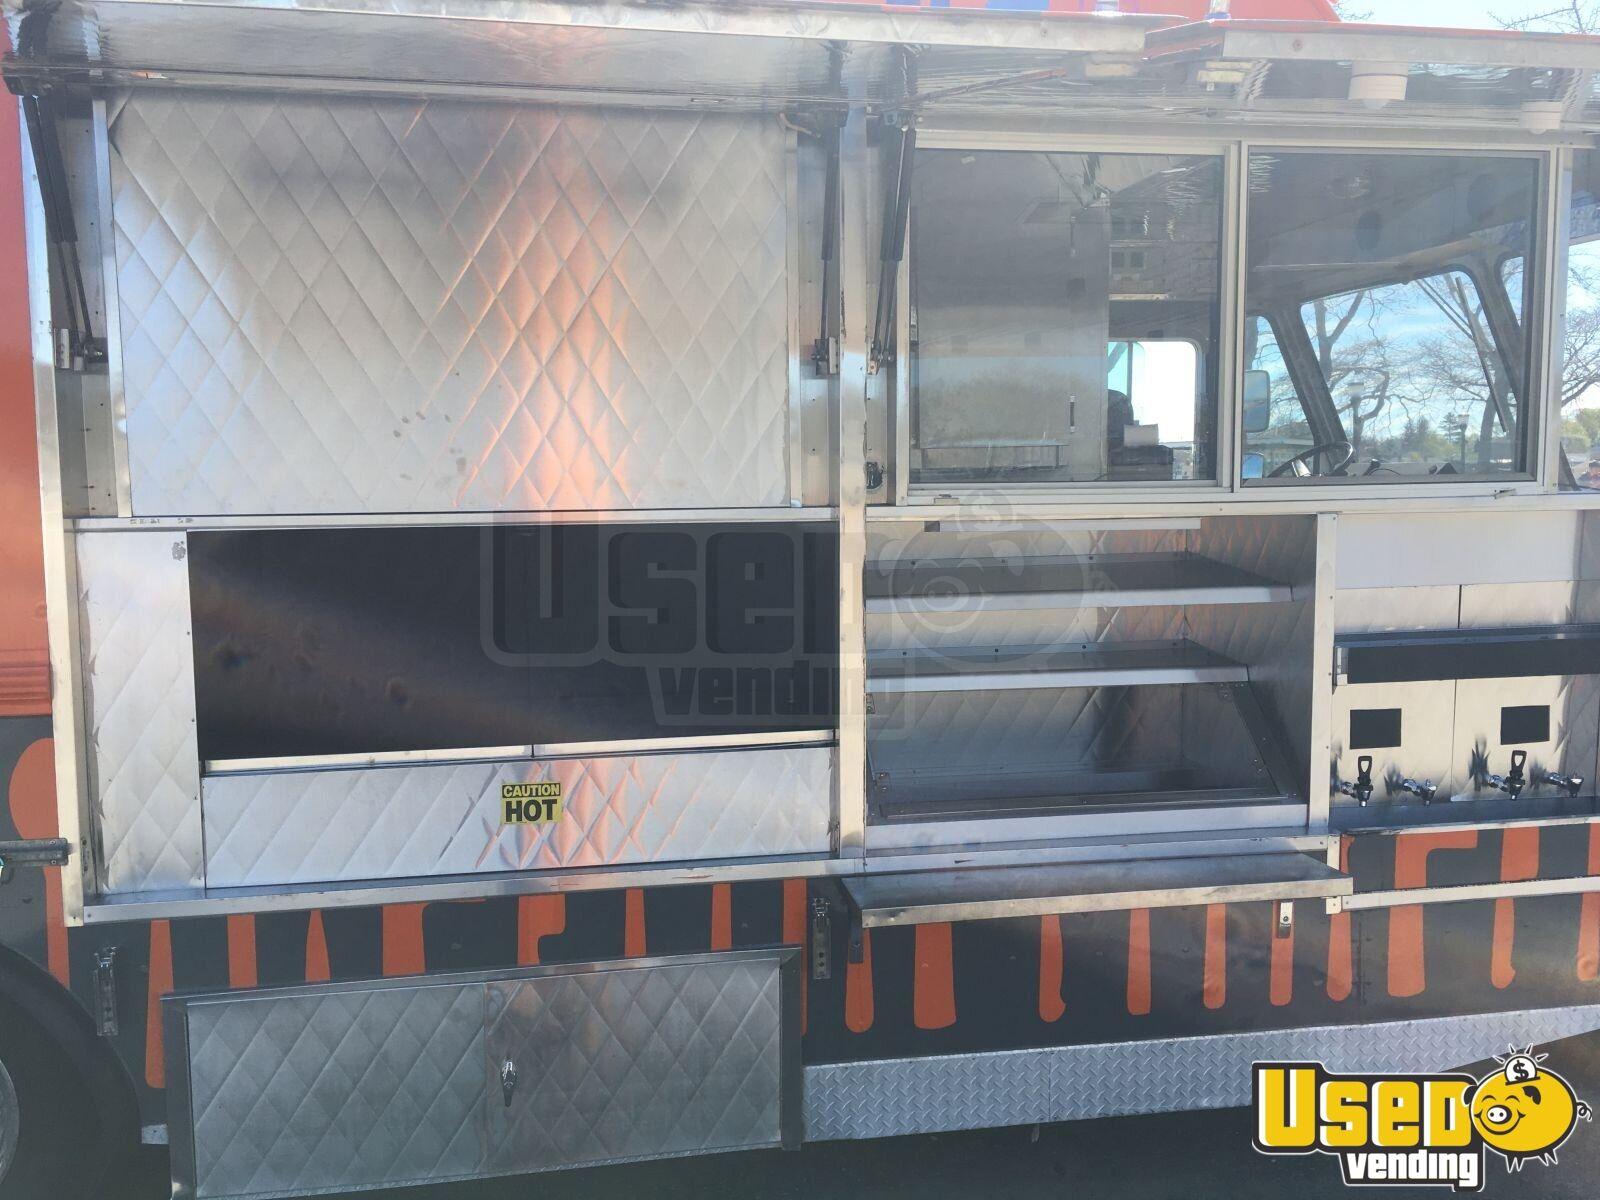 1999 Gmc 1900 All-purpose Food Truck Shore Power Cord Connecticut Gas Engine for Sale - 10